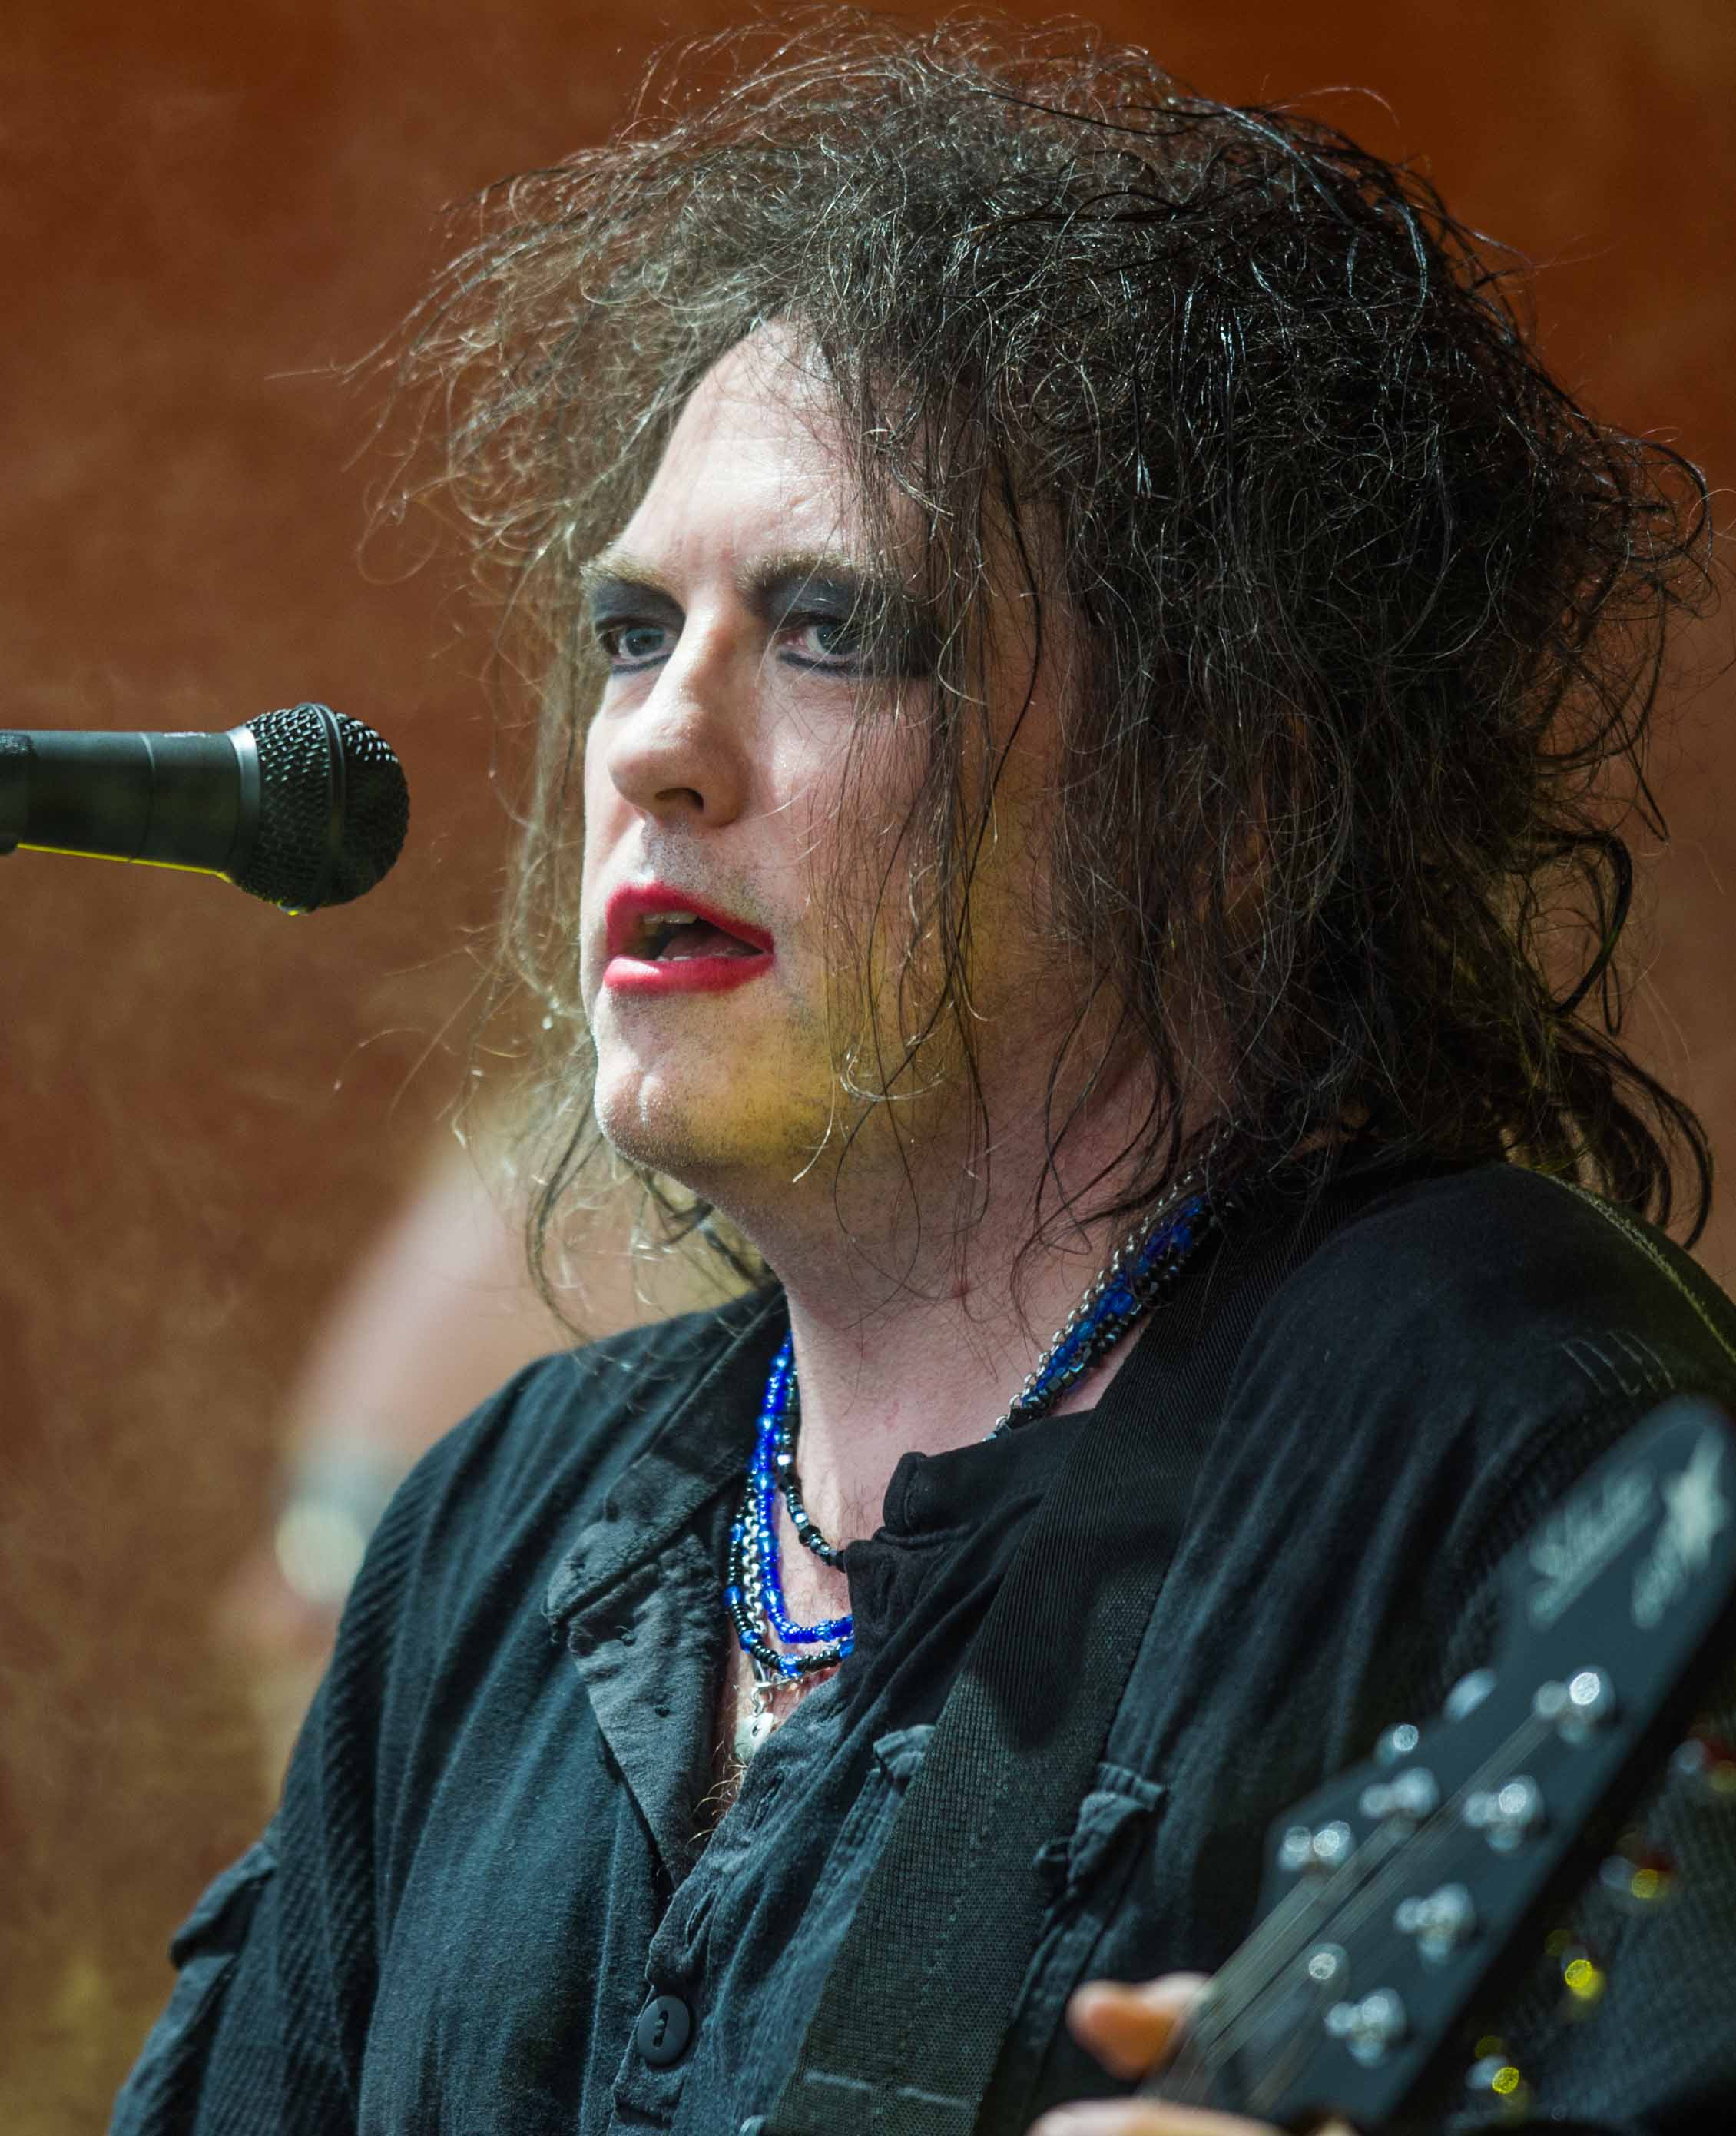 Robert Smith (singer) - Wikipedia